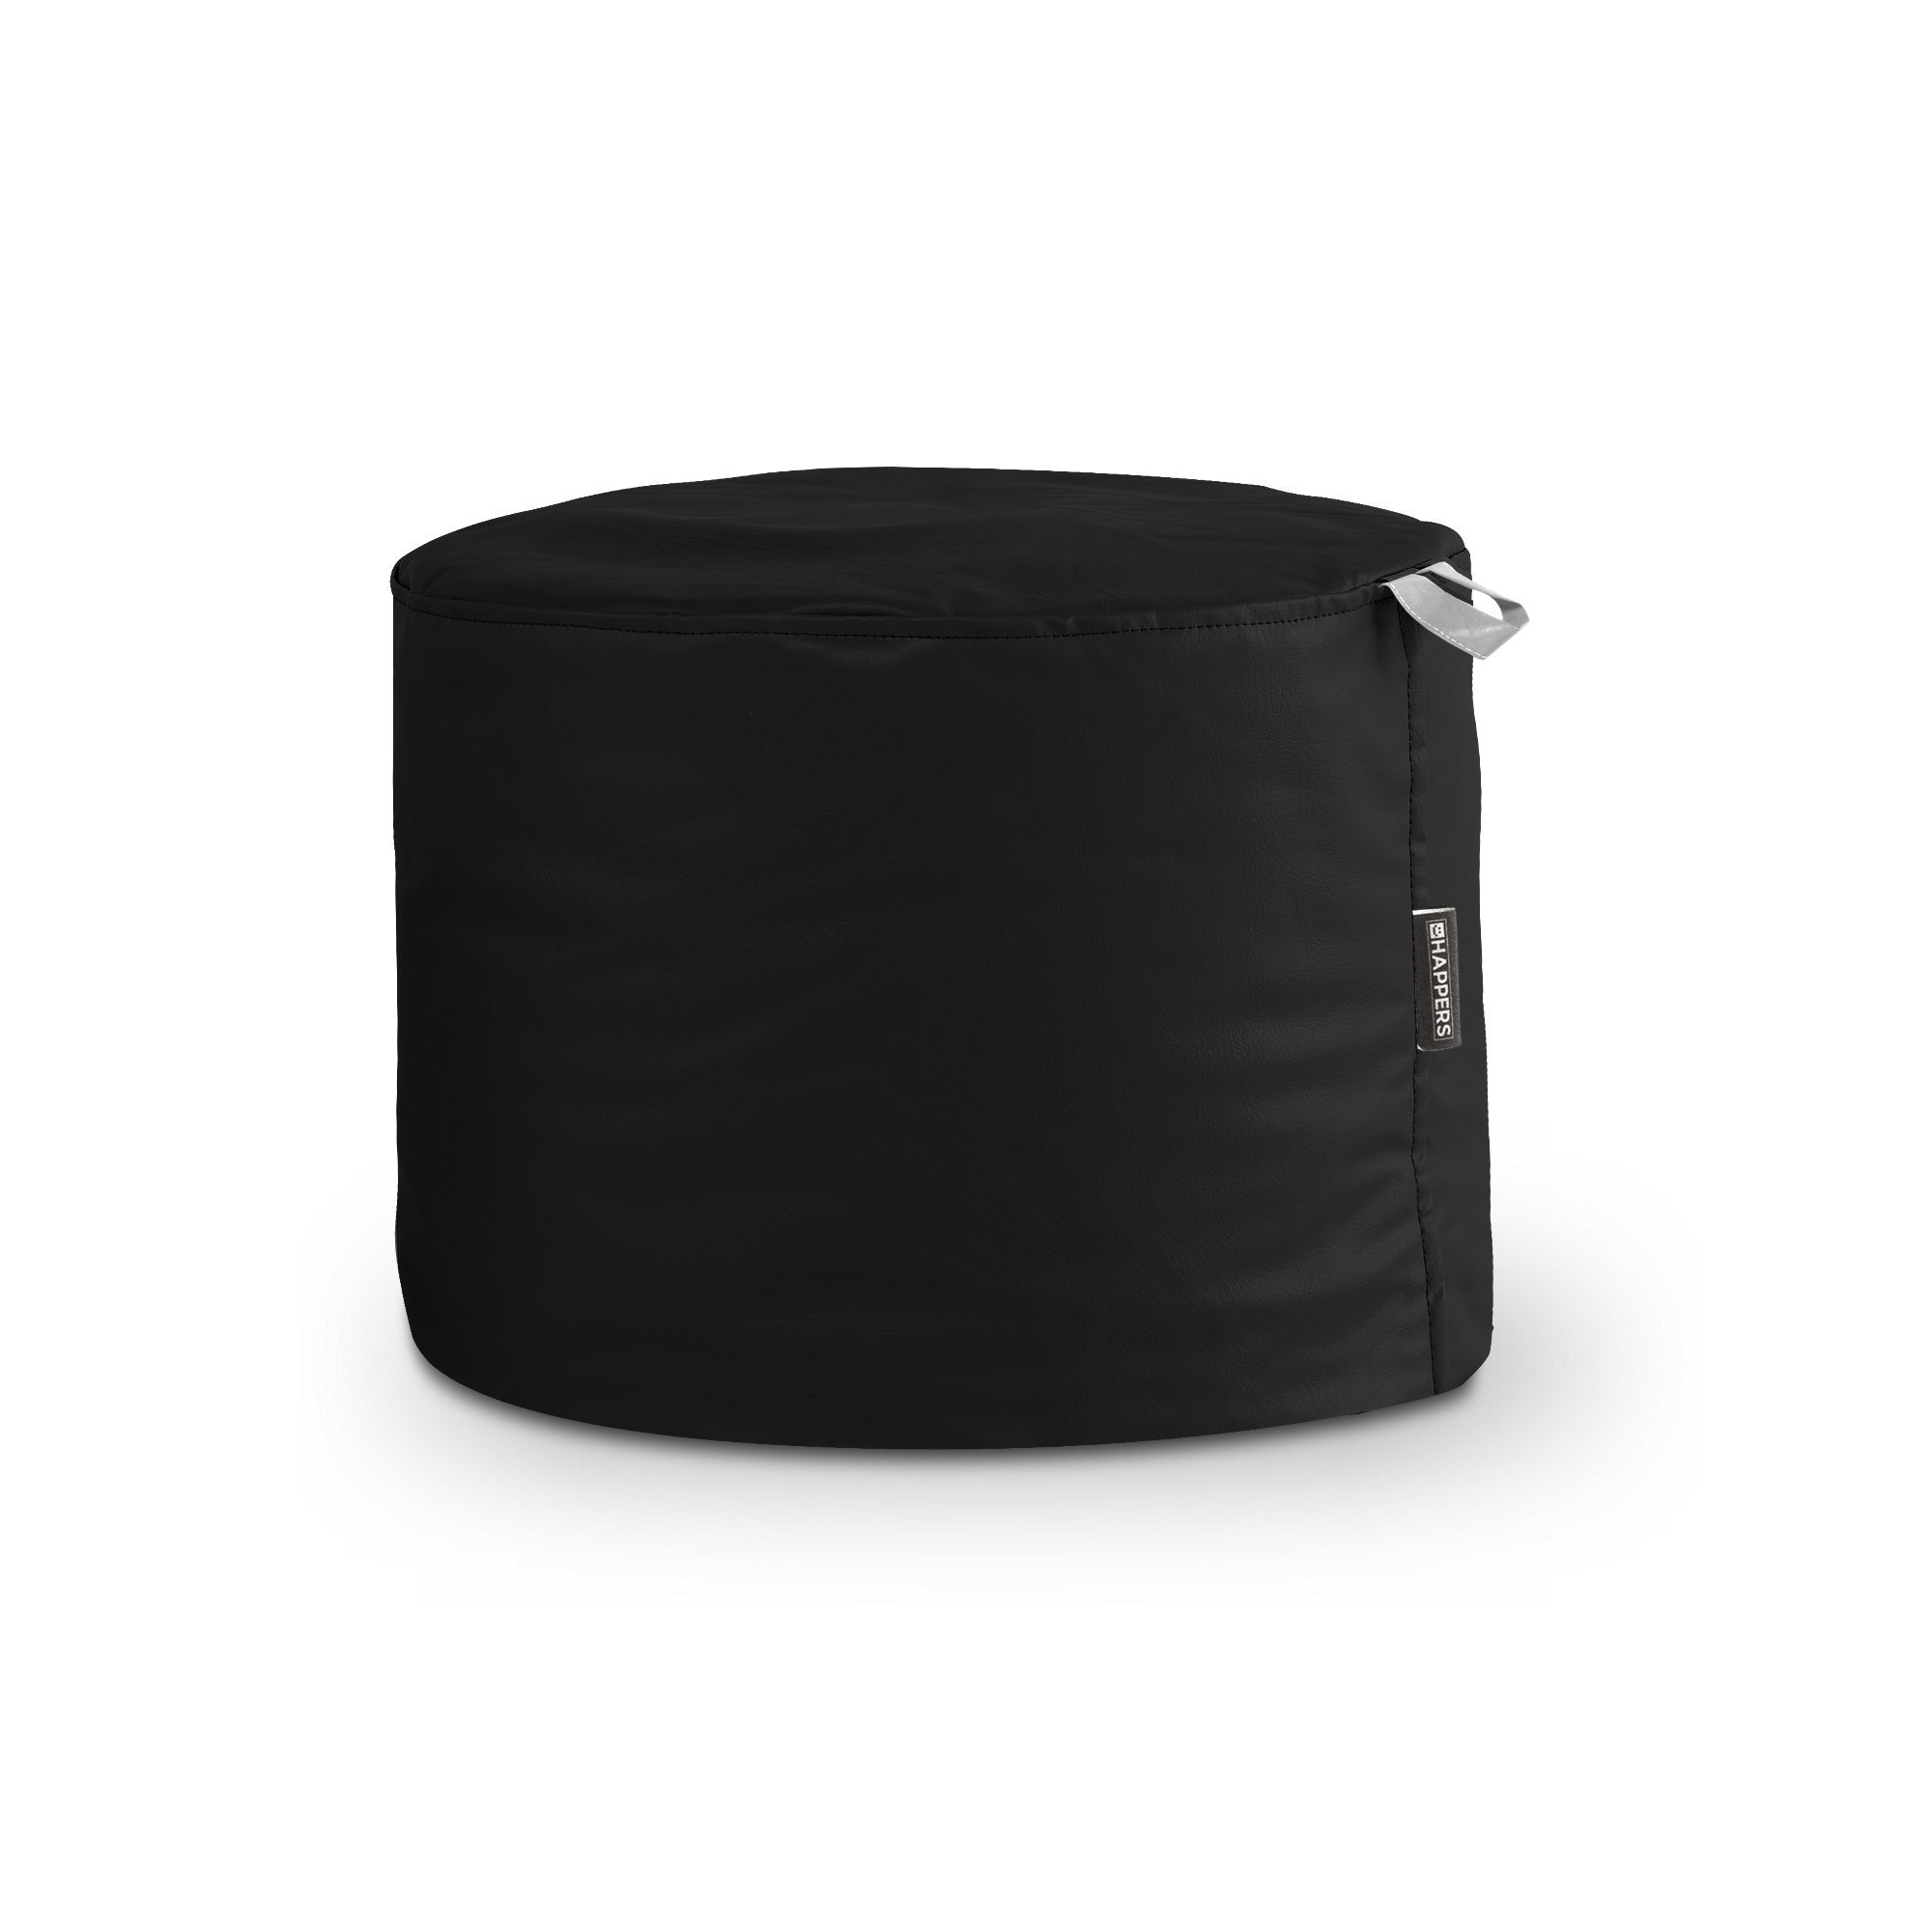 Puff Taburete Polipiel Outdoor Negro Happers